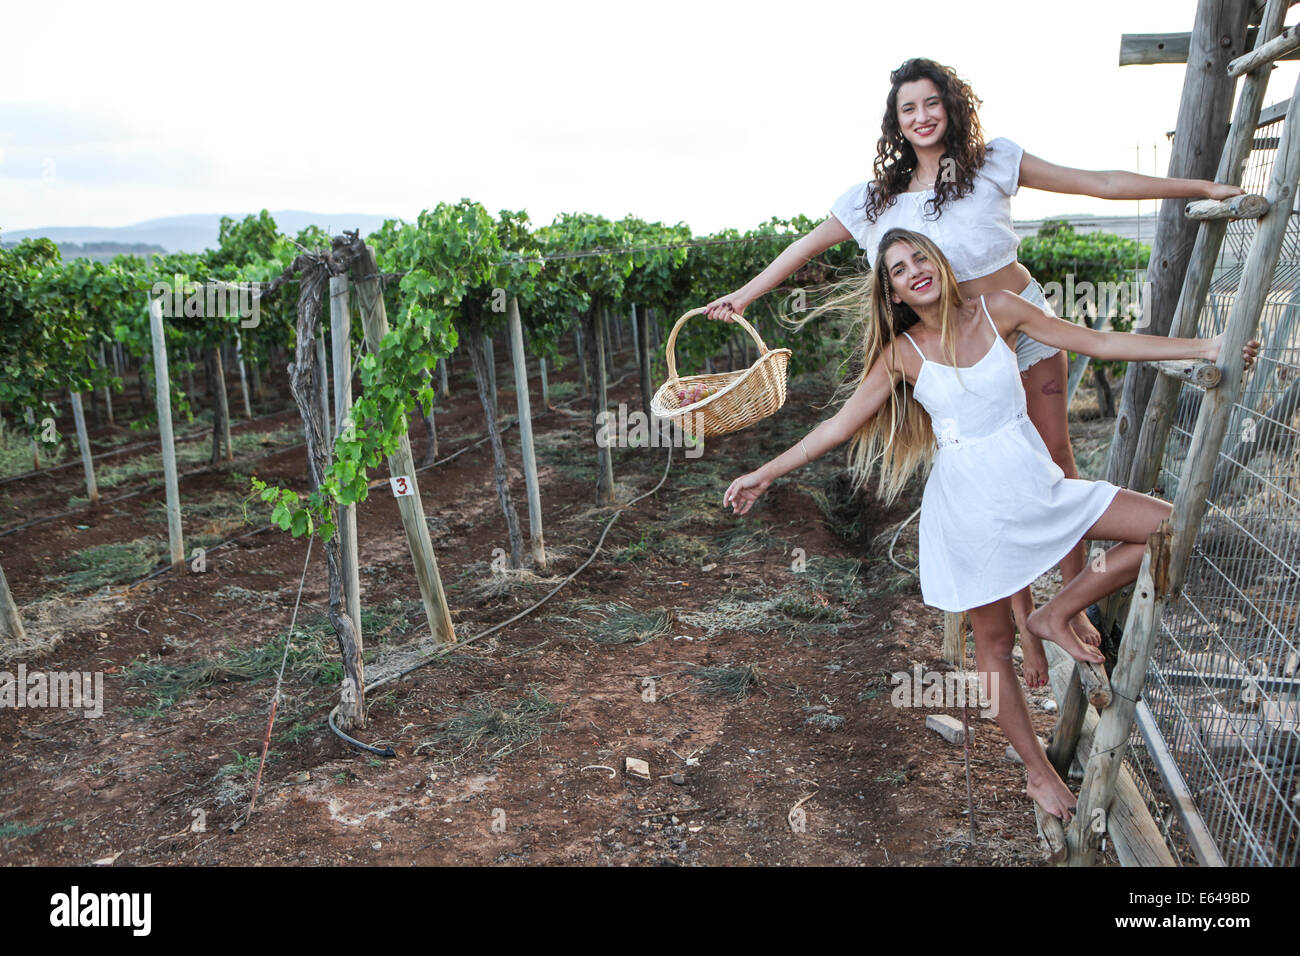 http://c8.alamy.com/comp/E649BD/young-teen-girl-in-white-dress-picks-grape-in-a-vineyard-E649BD.jpg